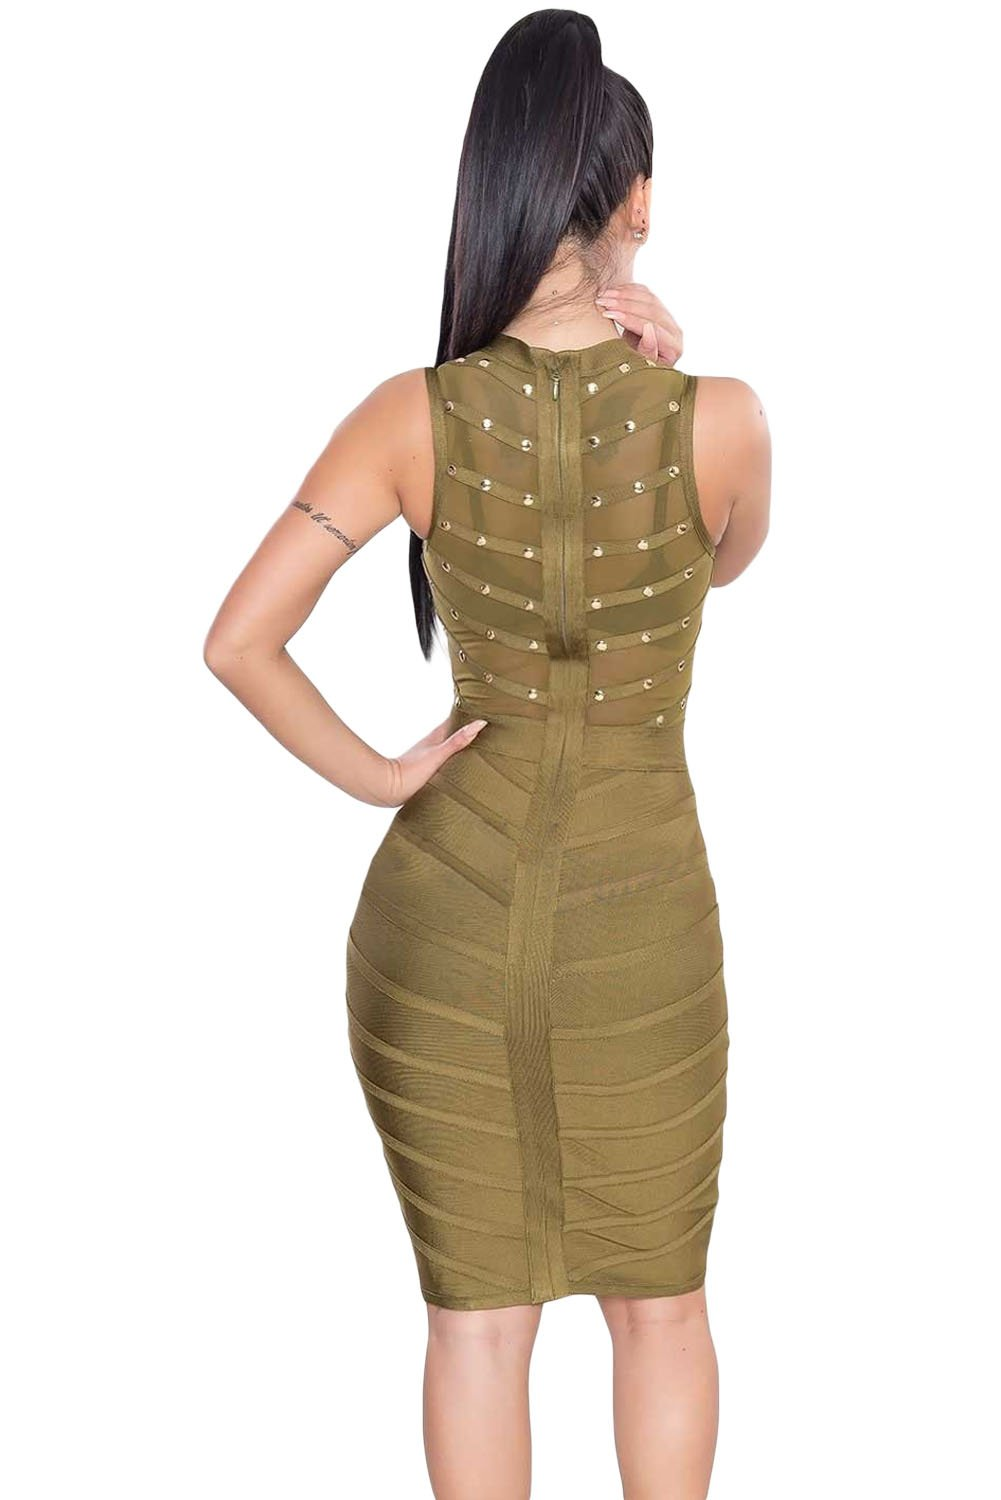 Army Green Studded Bandage Dress LAVELIQ - Laveliqus